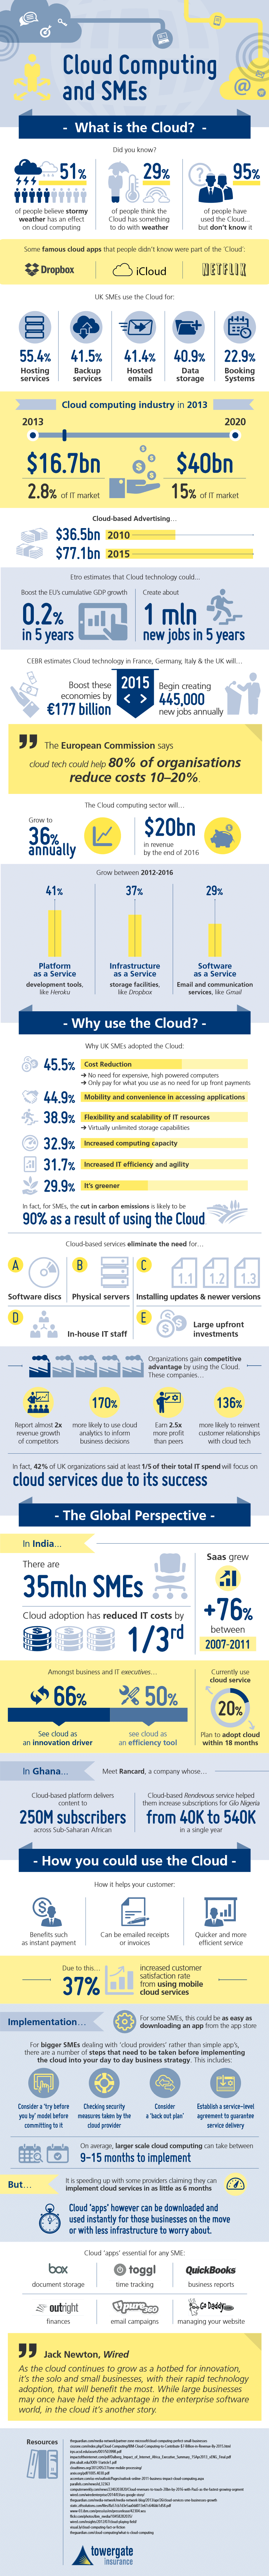 SMB Cloud Computing benefits are undeniable and increasing at an extraordinary rate